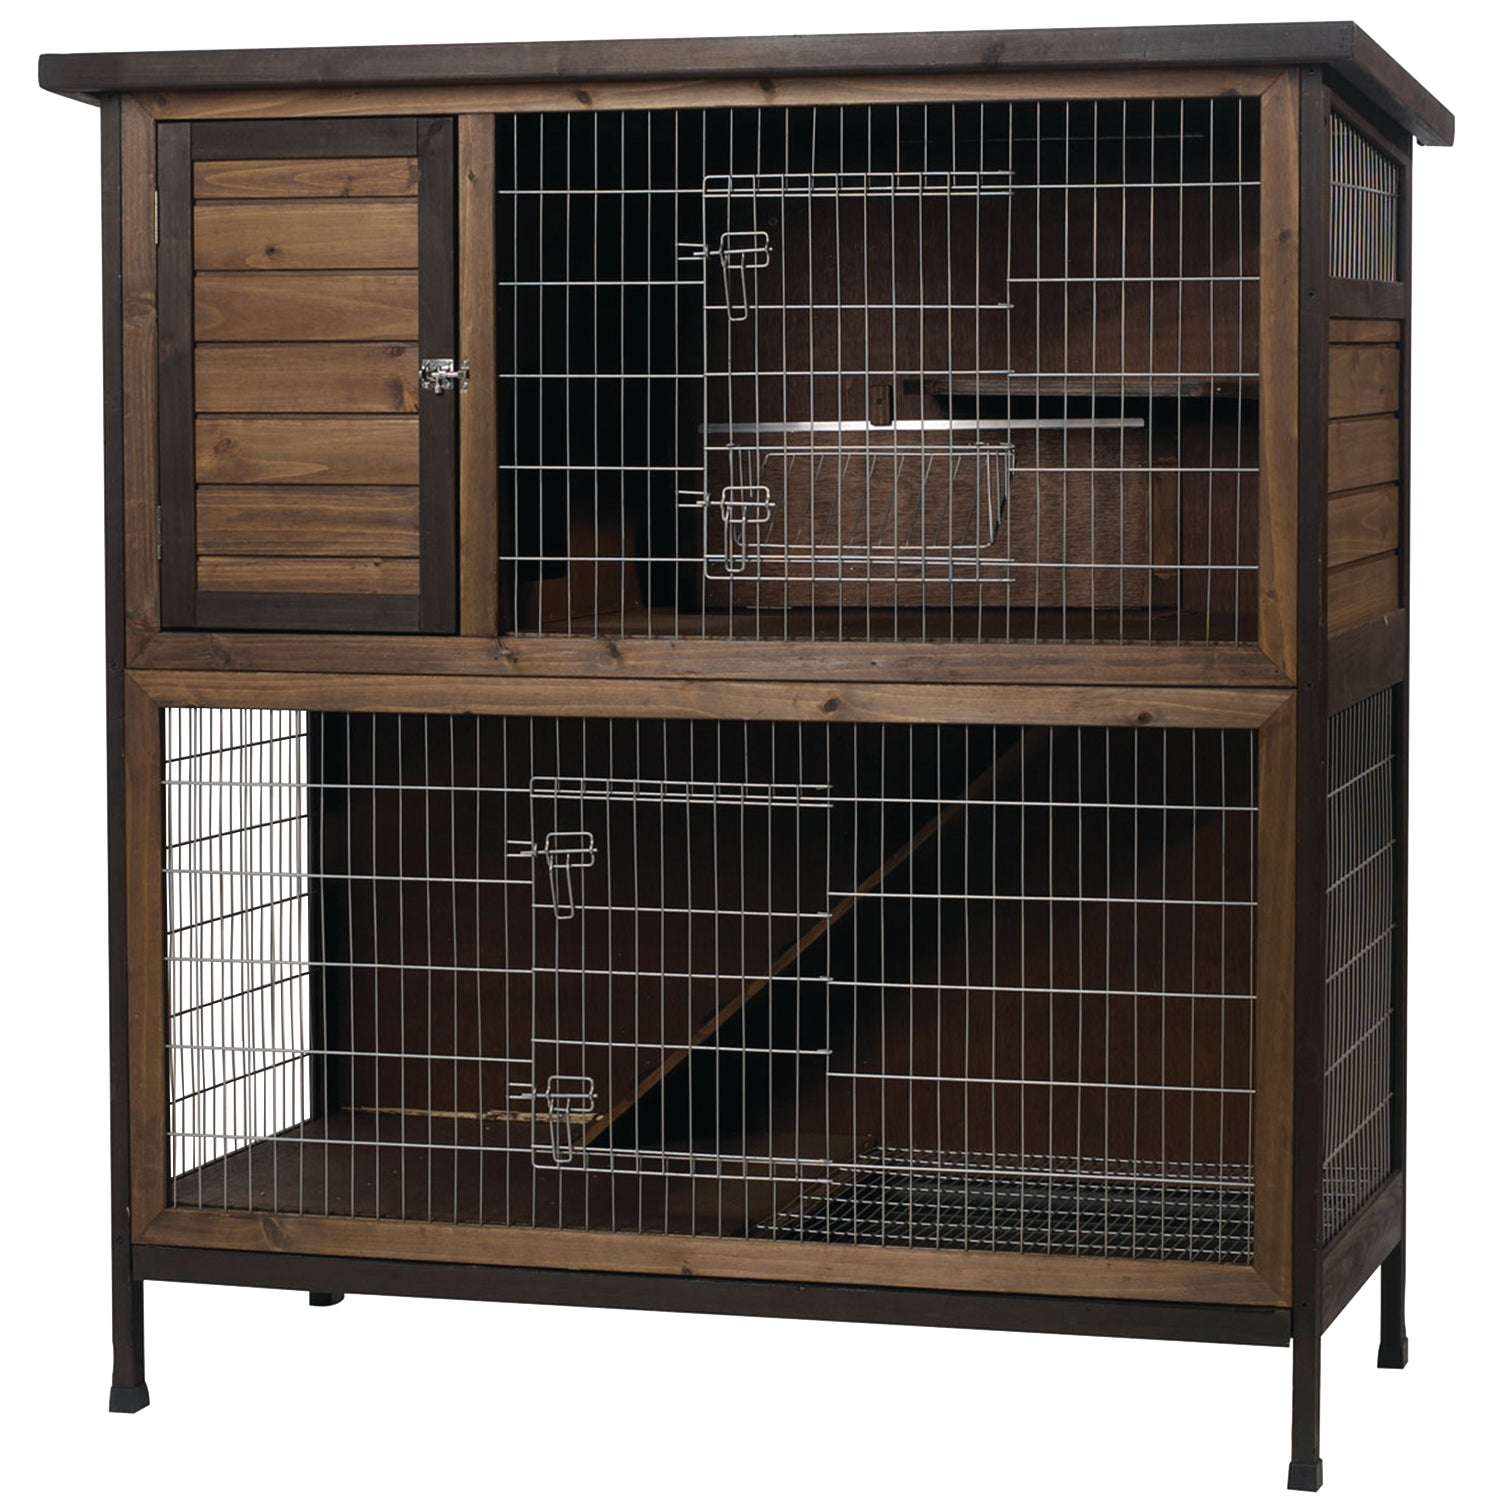 Kaytee Premium 2 Story Rabbit Hutch